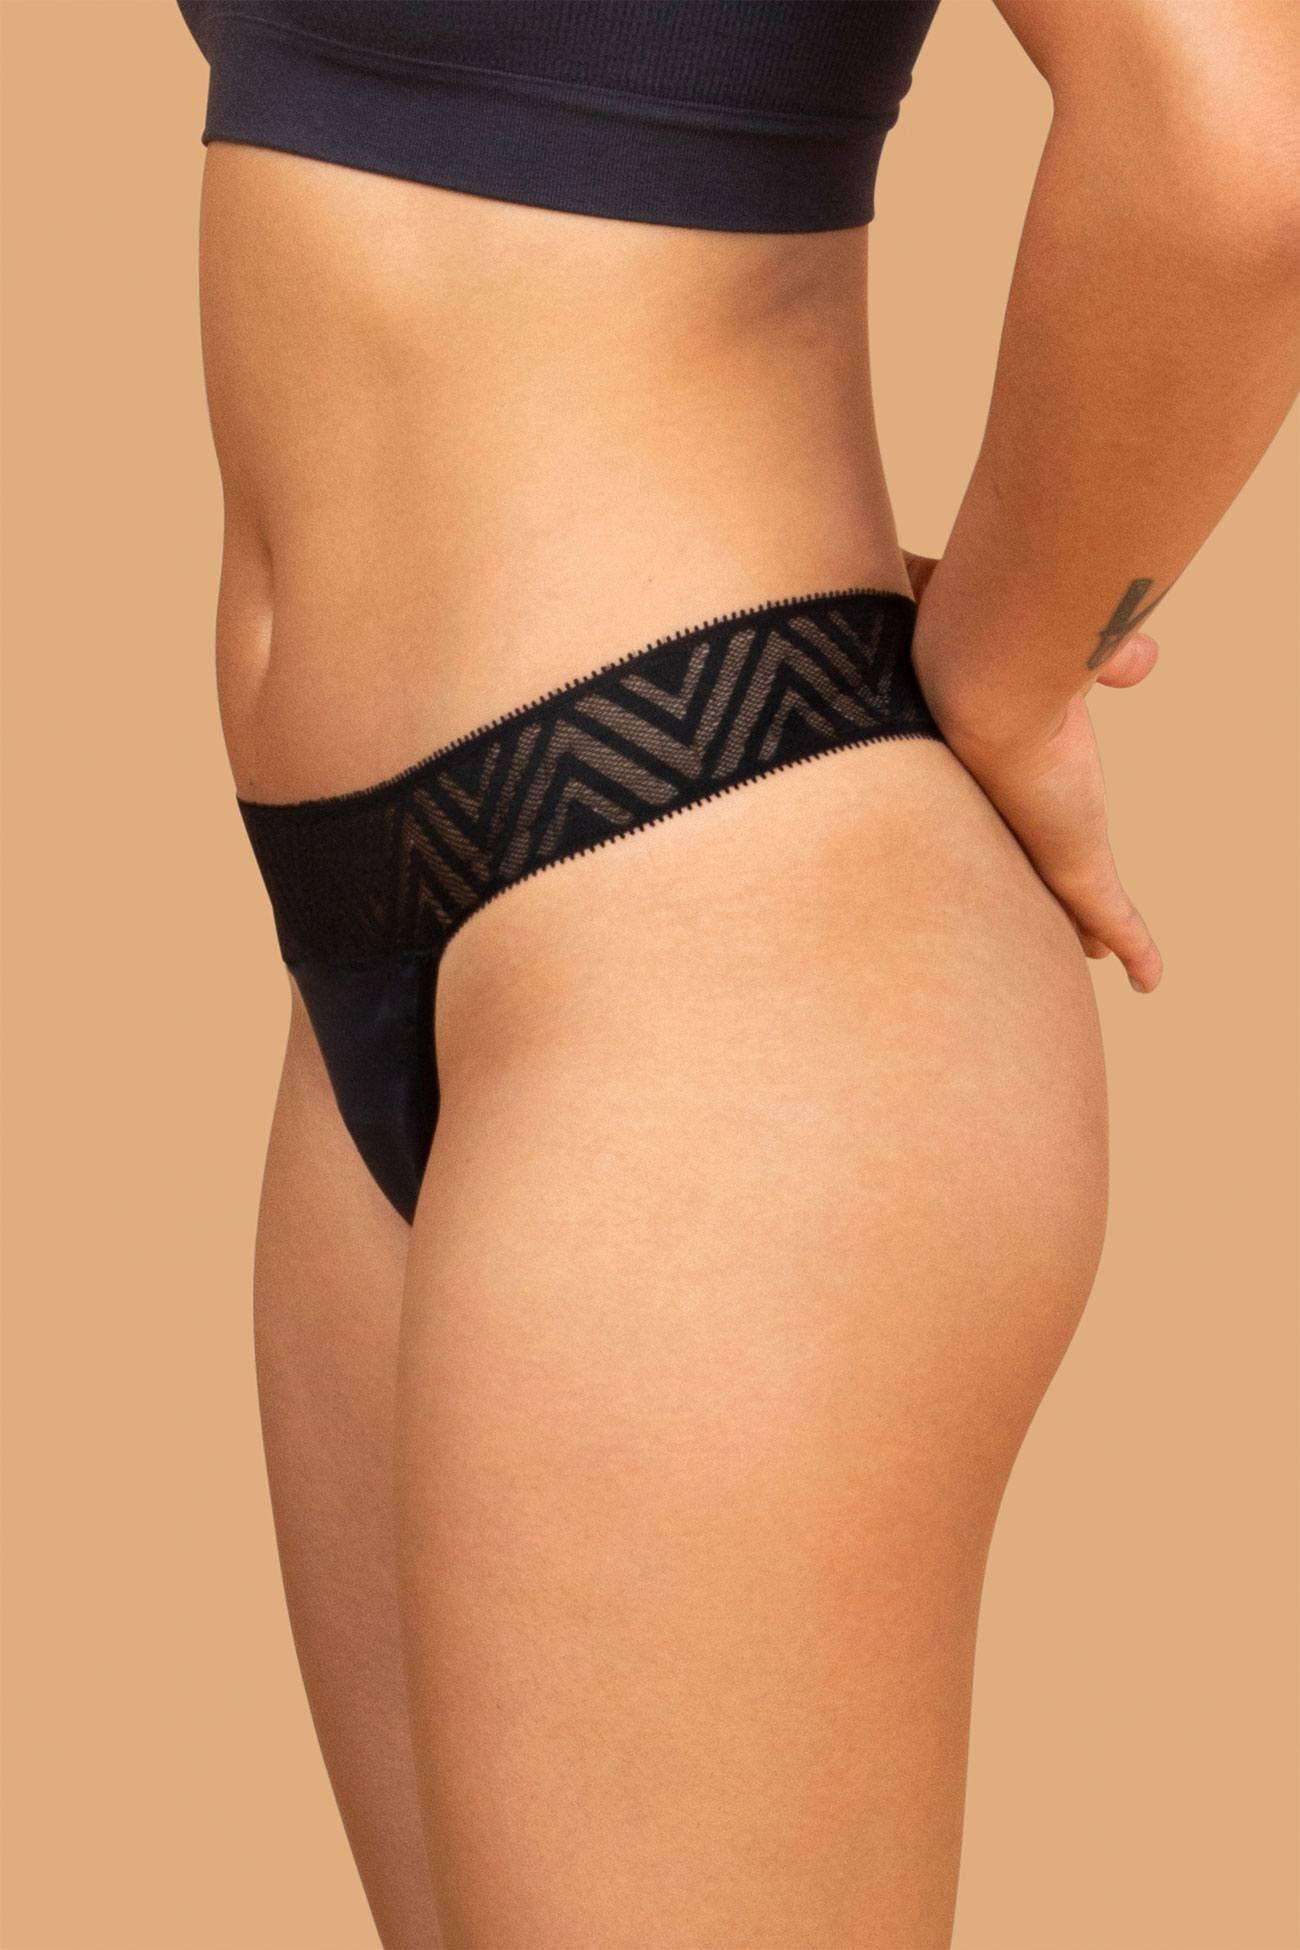 Thinx Review: I tried every style of thinx period panties so you don't have to! #thinx #periodpanties #period #zerowaste #ecofriendly #gogreen #sustainable